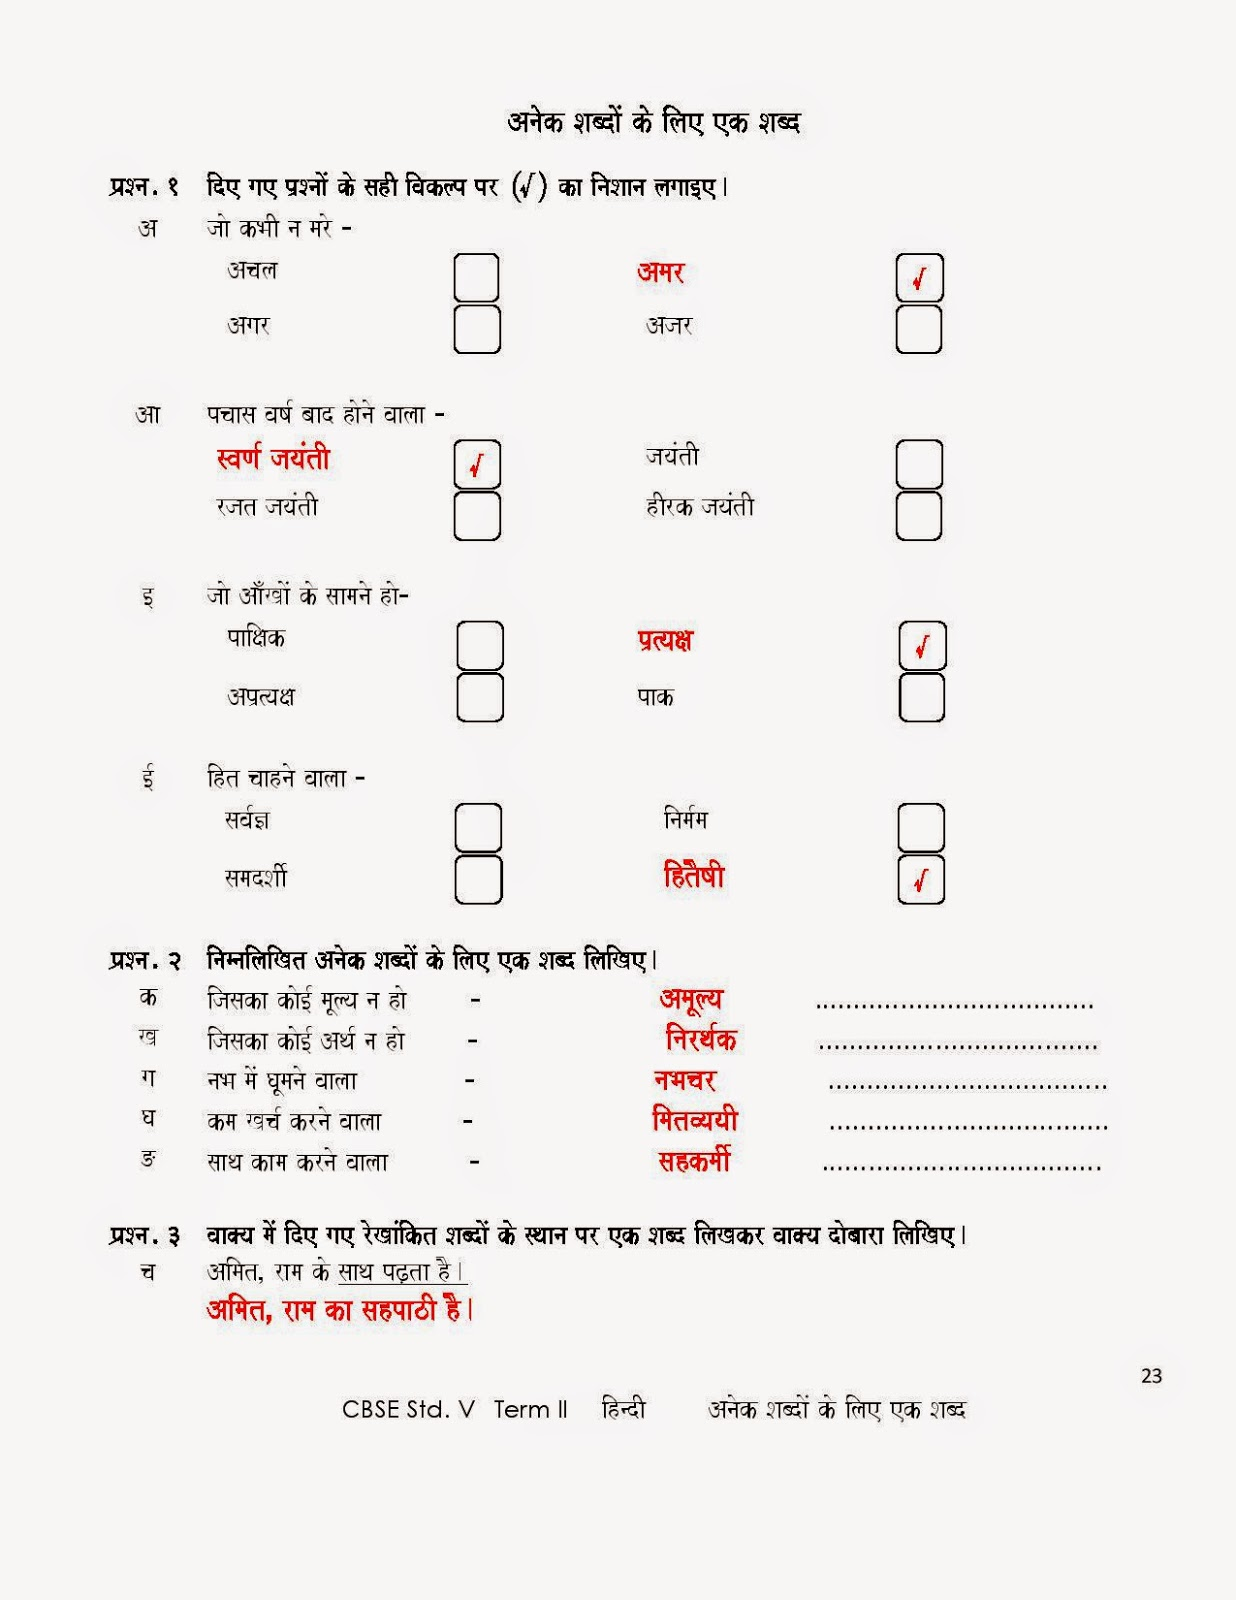 STARS OF PIS AHMEDABAD STD V: HINDI WORKSHEETS